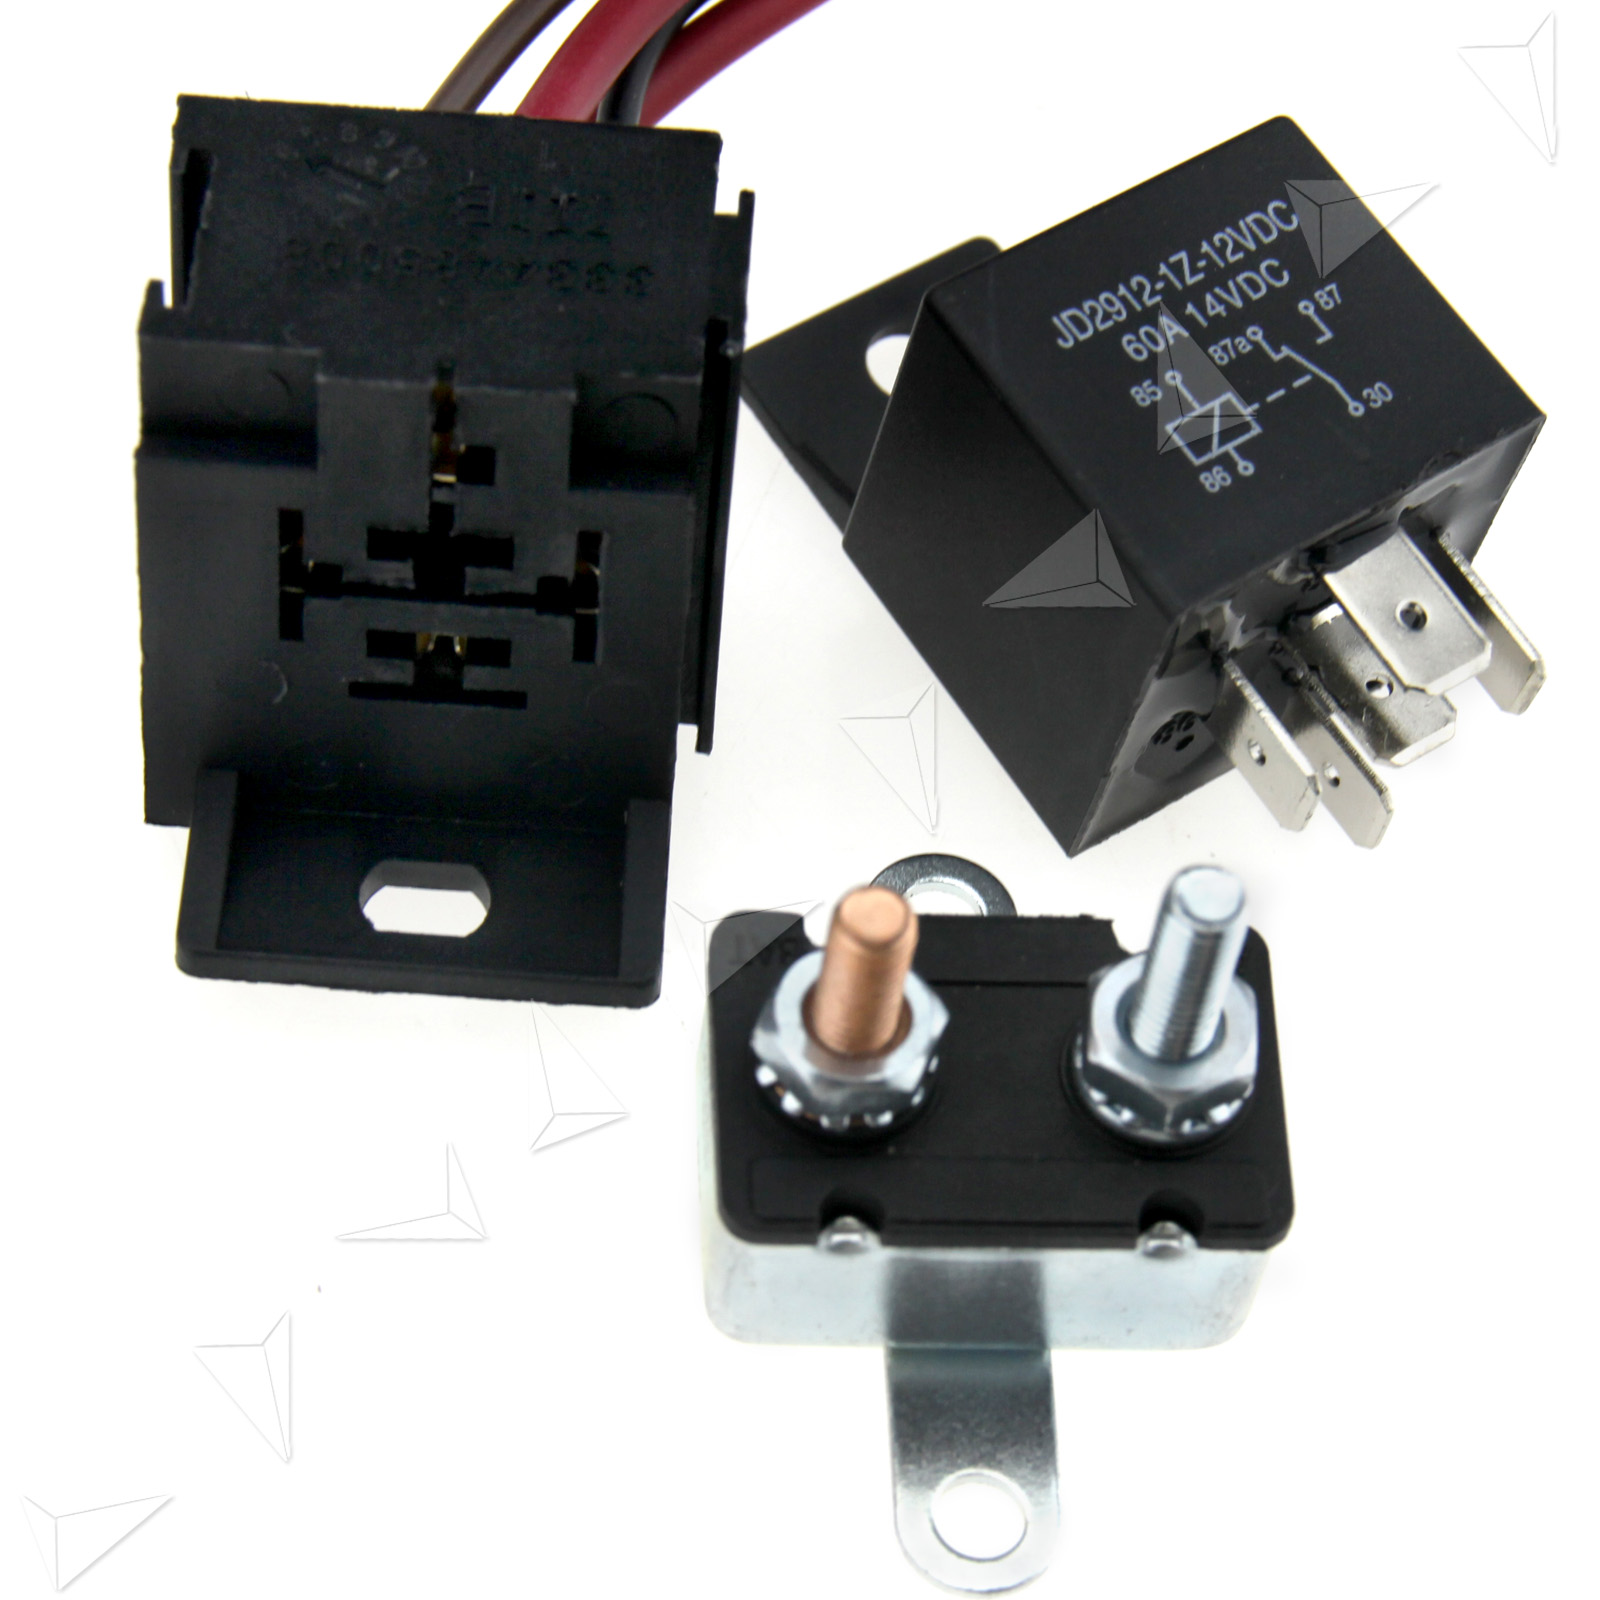 5 pins relay 200 185 degree engine cooling fan thermostat switch sensor kits - Four 200 degres thermostat ...